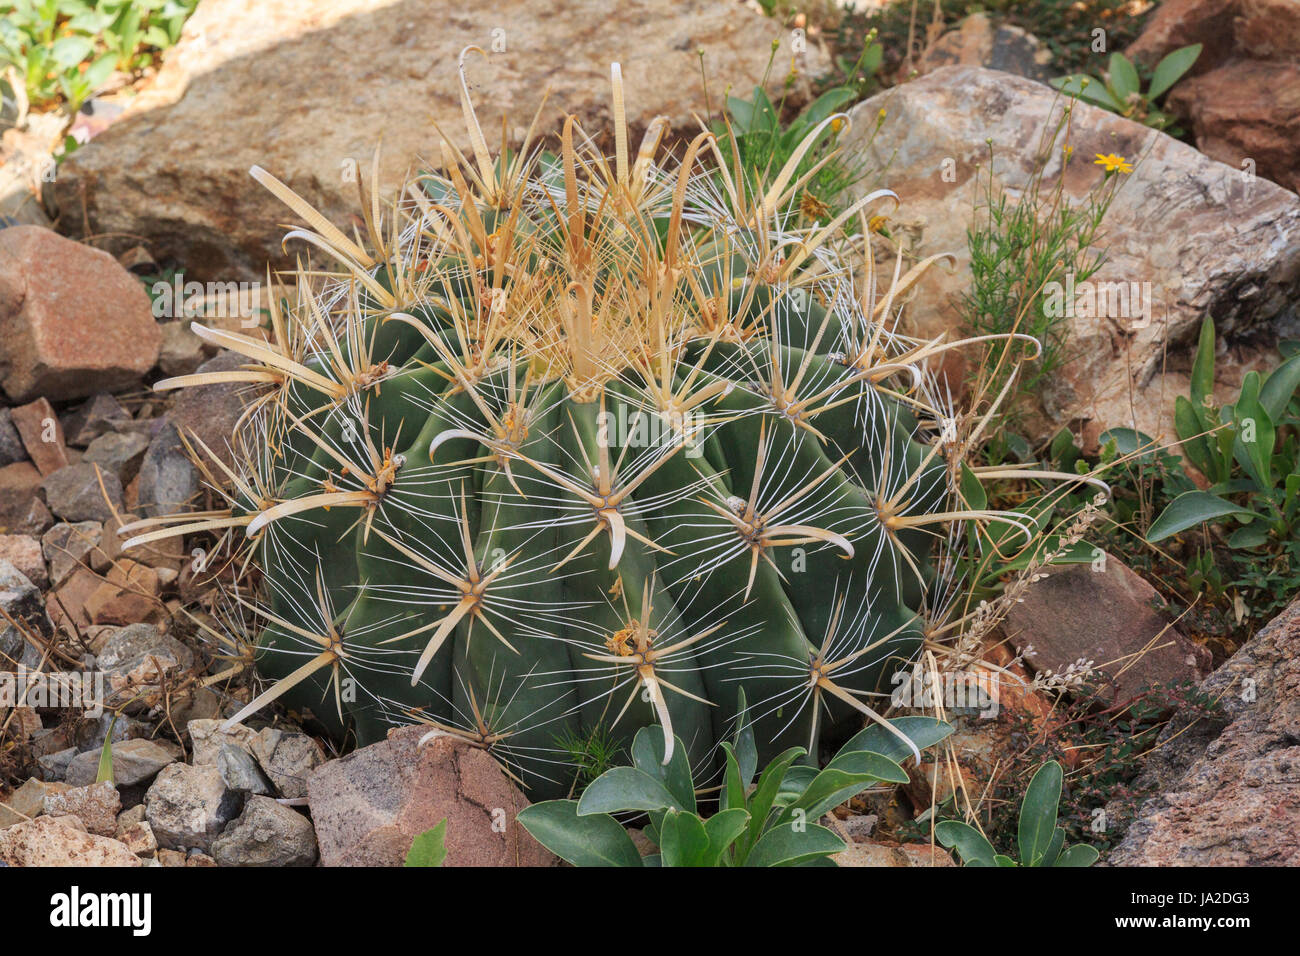 Cactus Plants In A Desert Garden Stock Photo 143884051 Alamy